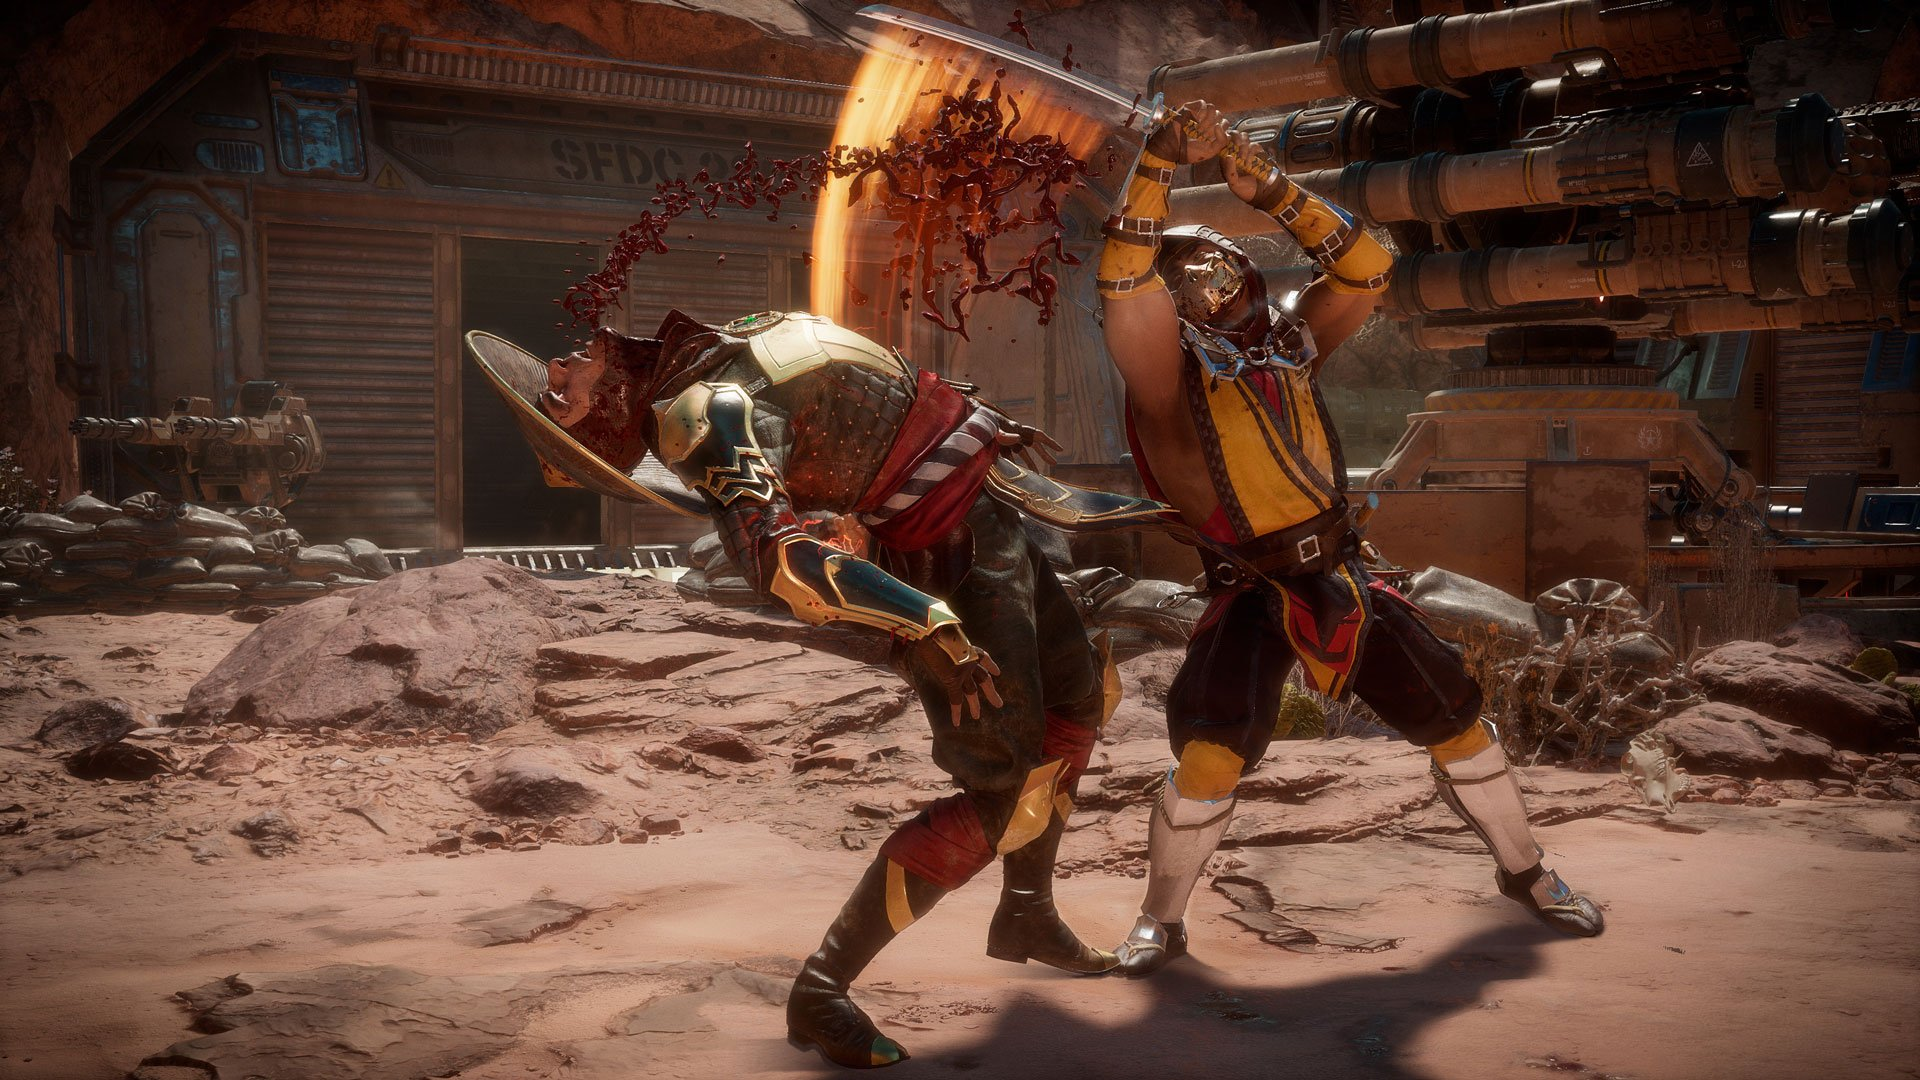 To access the closed beta for Mortal Kombat 11, you'll need to pre-order a copy of the game for either Xbox One or PlayStation 4.